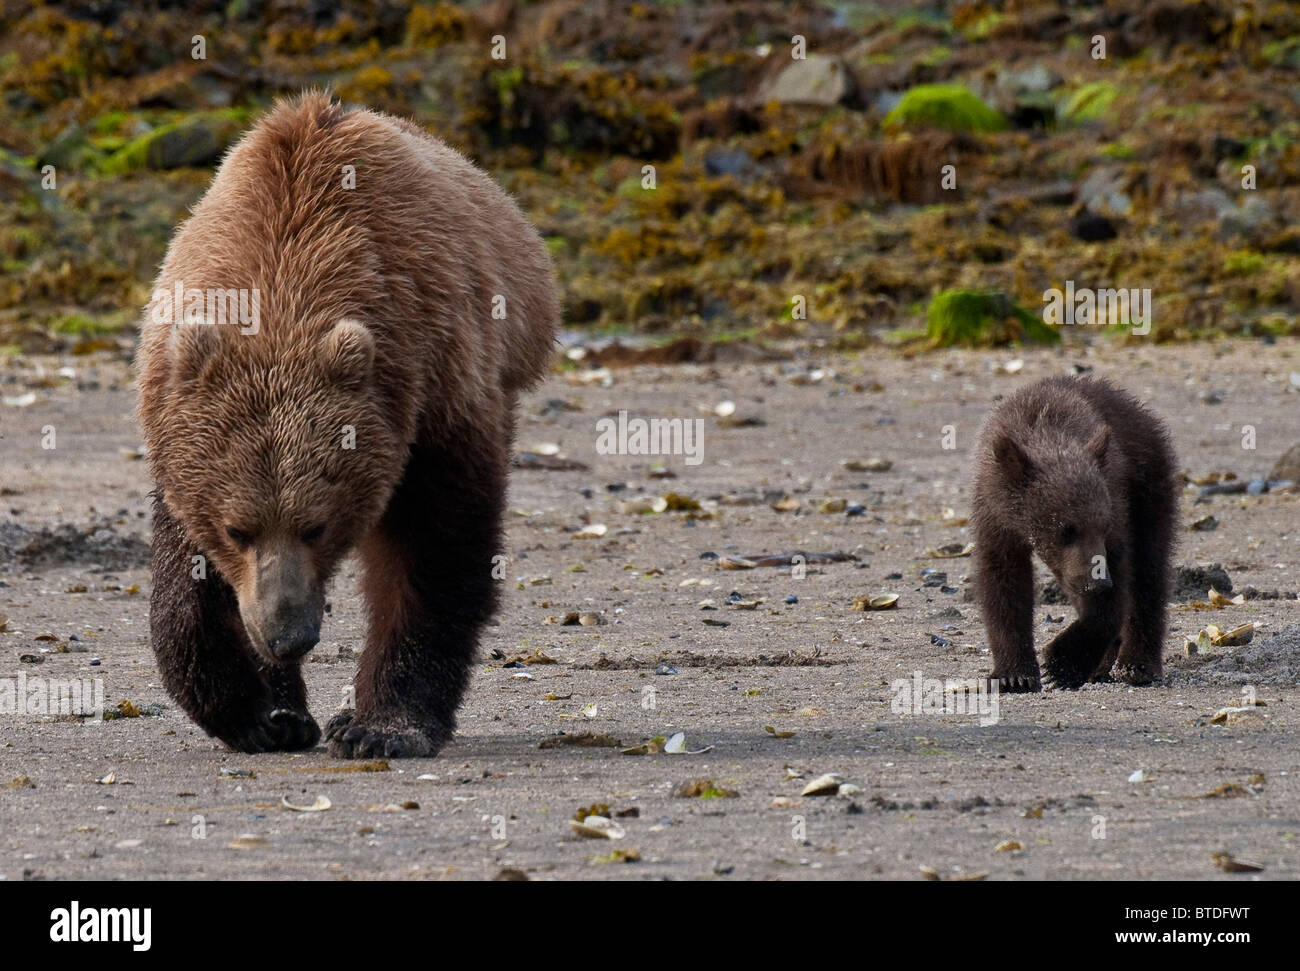 Brown bear sow with cub hunting for clams in  Geographic Harbor, Katmai National Park, Southwest Alaska, Summer - Stock Image